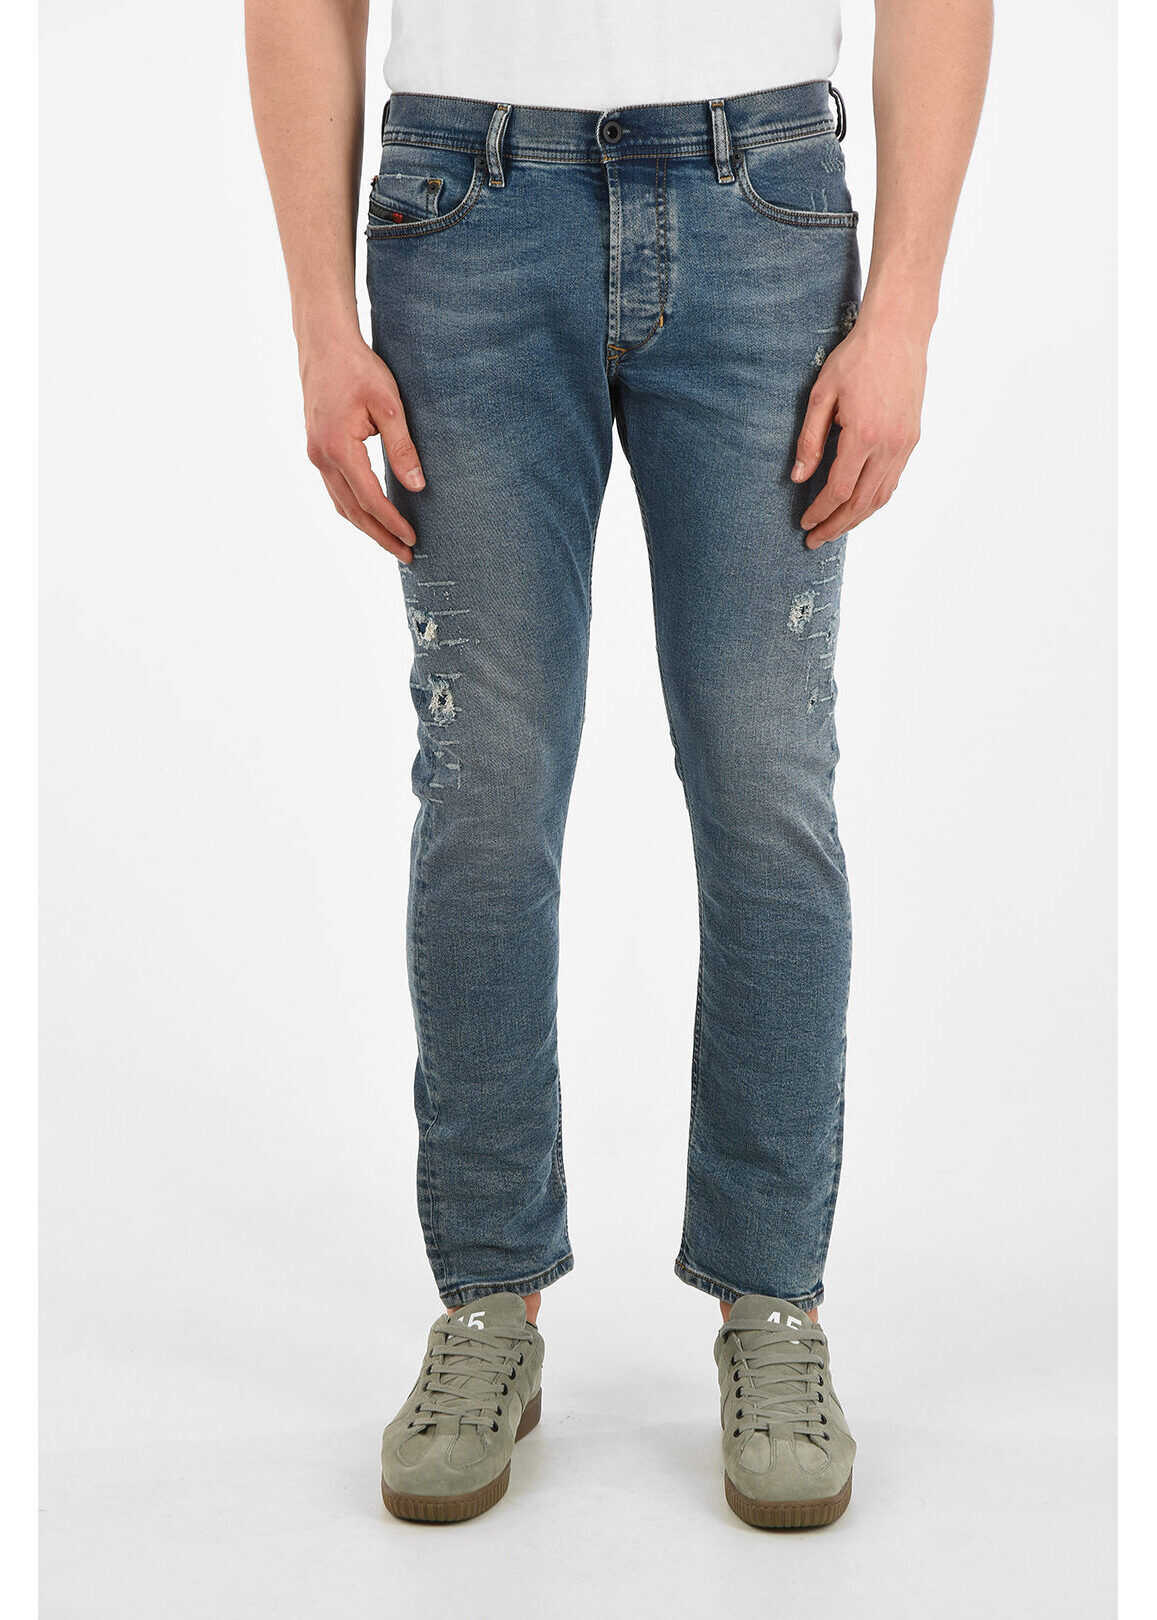 Diesel 16cm Vintage Effect TEPPHAR Jeans L30 BLUE imagine